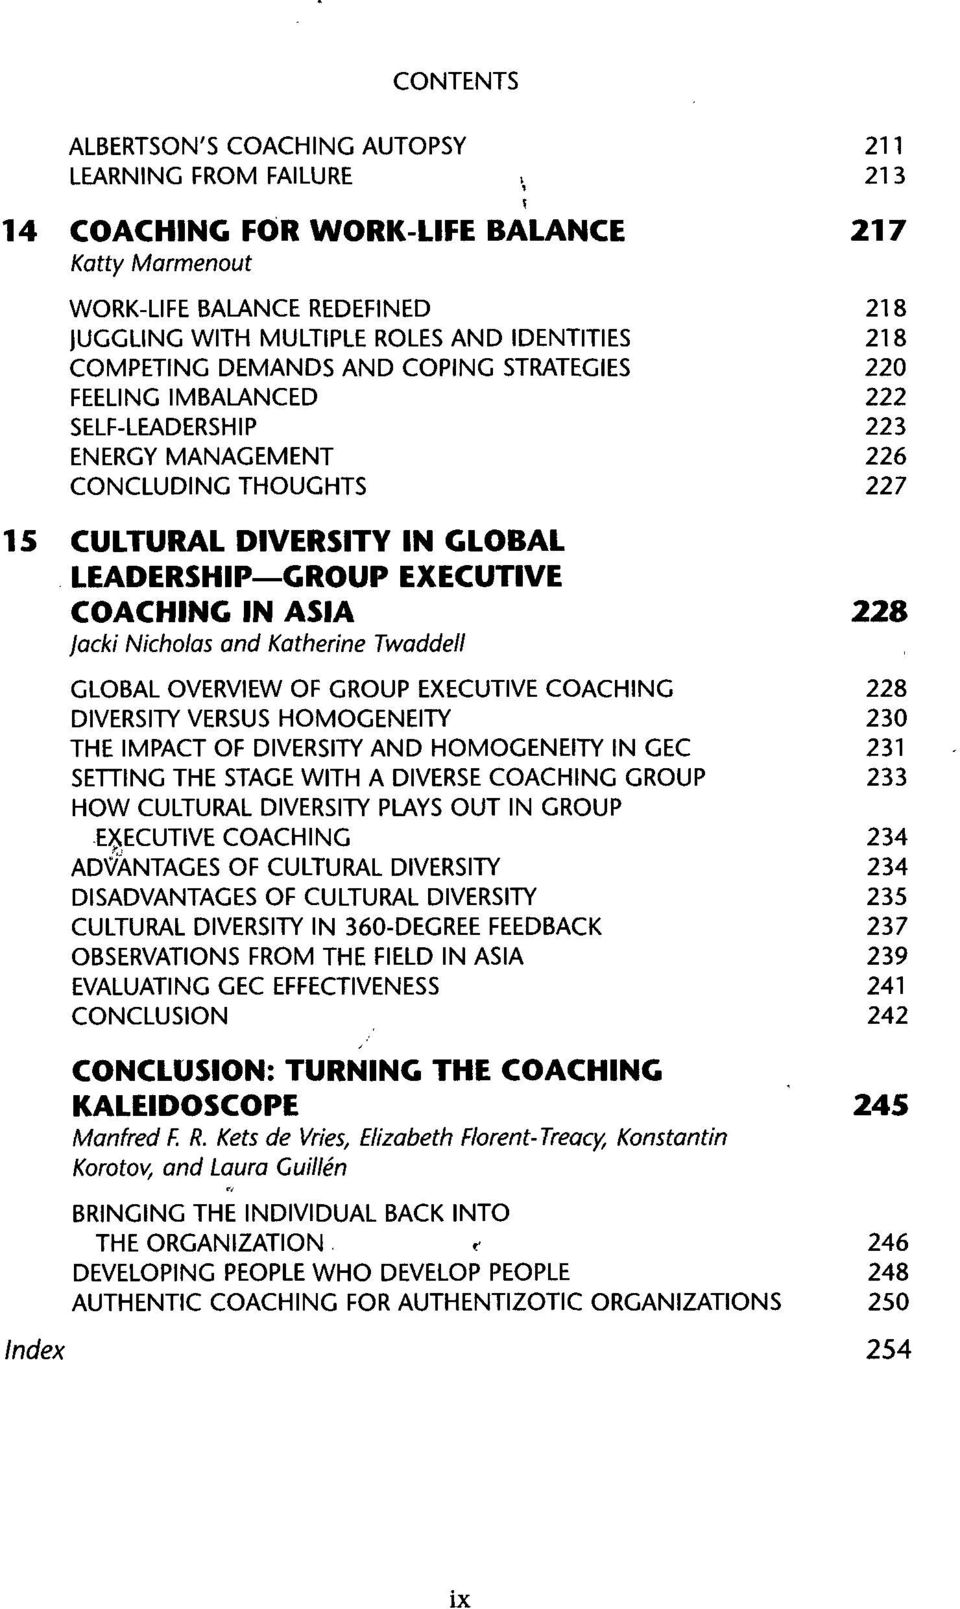 IMBALANCED 222 SELF-LEADERSHIP 223 ENERGY MANAGEMENT 226 CONCLUDING THOUGHTS 227 15 CULTURAL DIVERSITY IN GLOBAL LEADERSHIP GROUP EXECUTIVE COACHING IN ASIA 228 jacki Nicholas and Katherine Twaddell